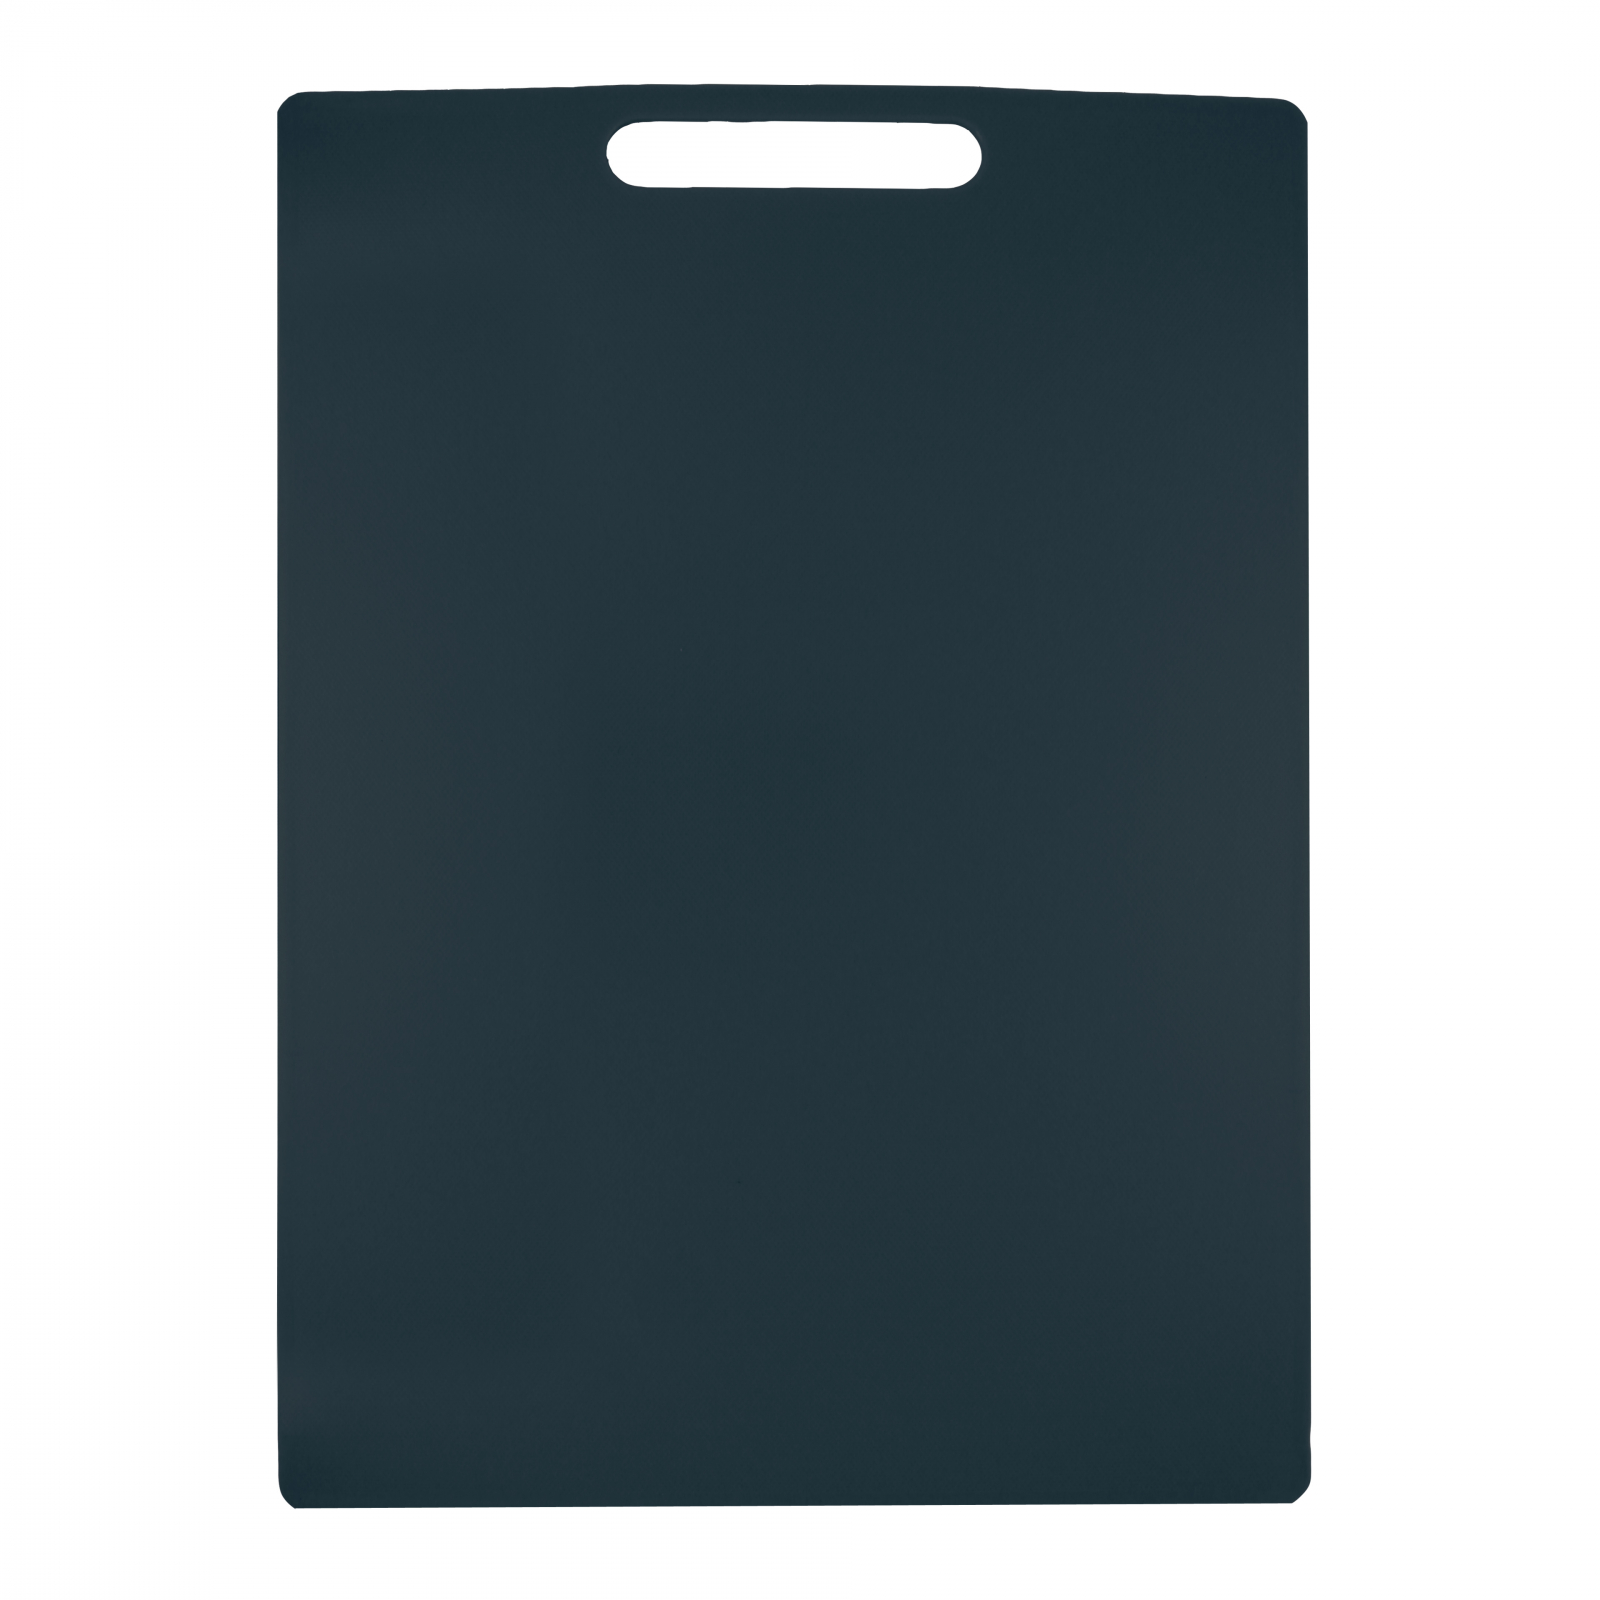 Home Essentials Kitchen Cutting Board 10.8 x 15 Inch - Black